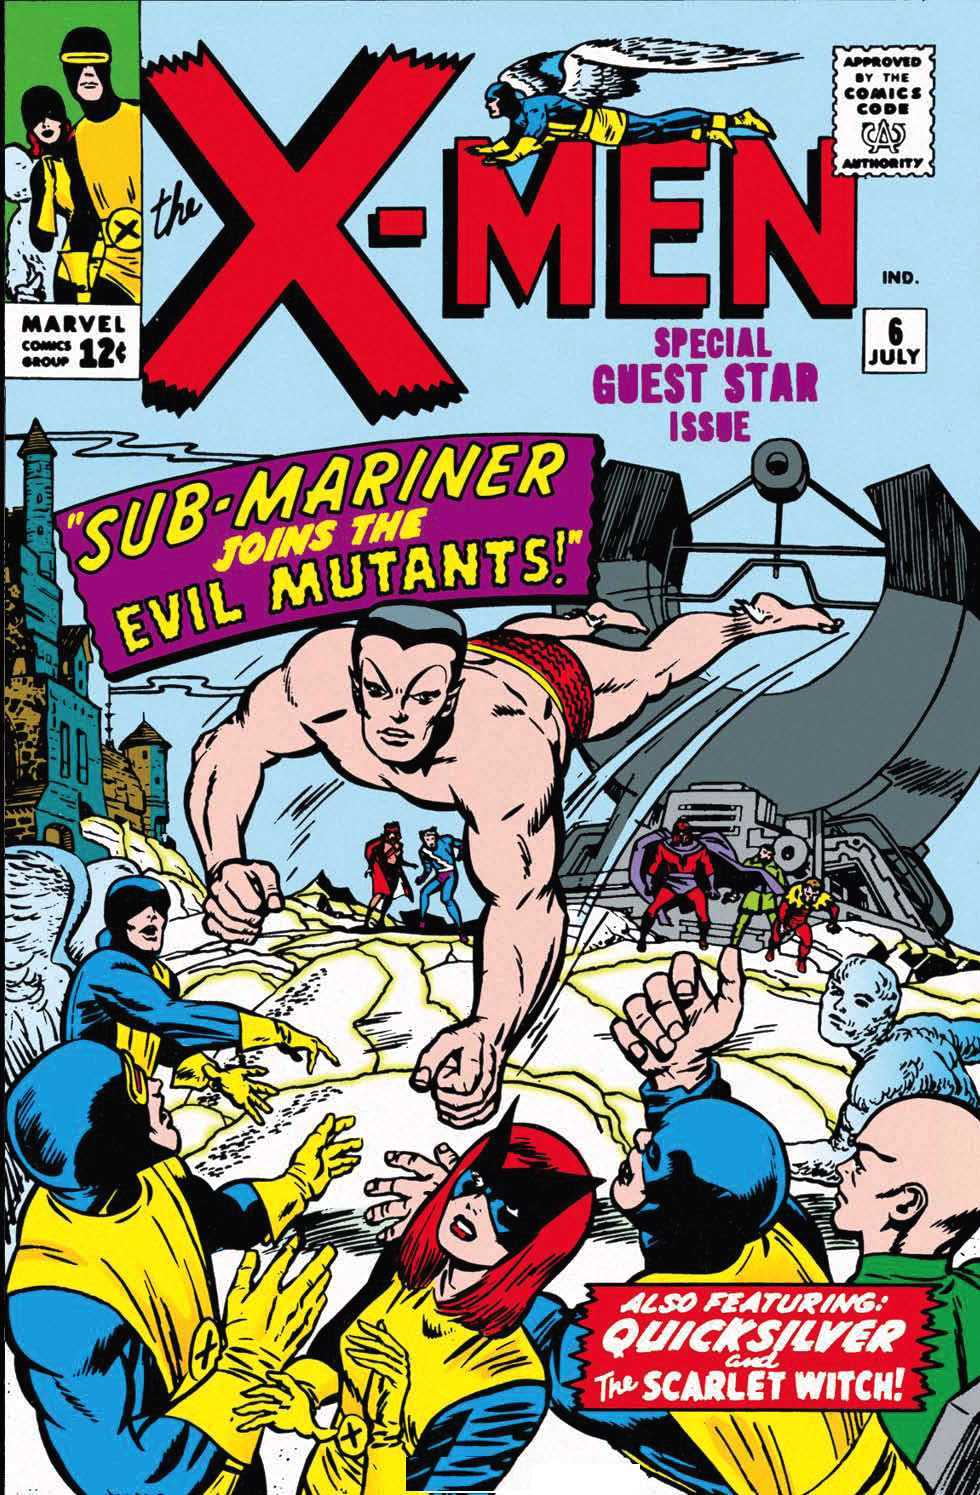 Meet the Brotherhood Of Evil Mutants: X-Men 4-7